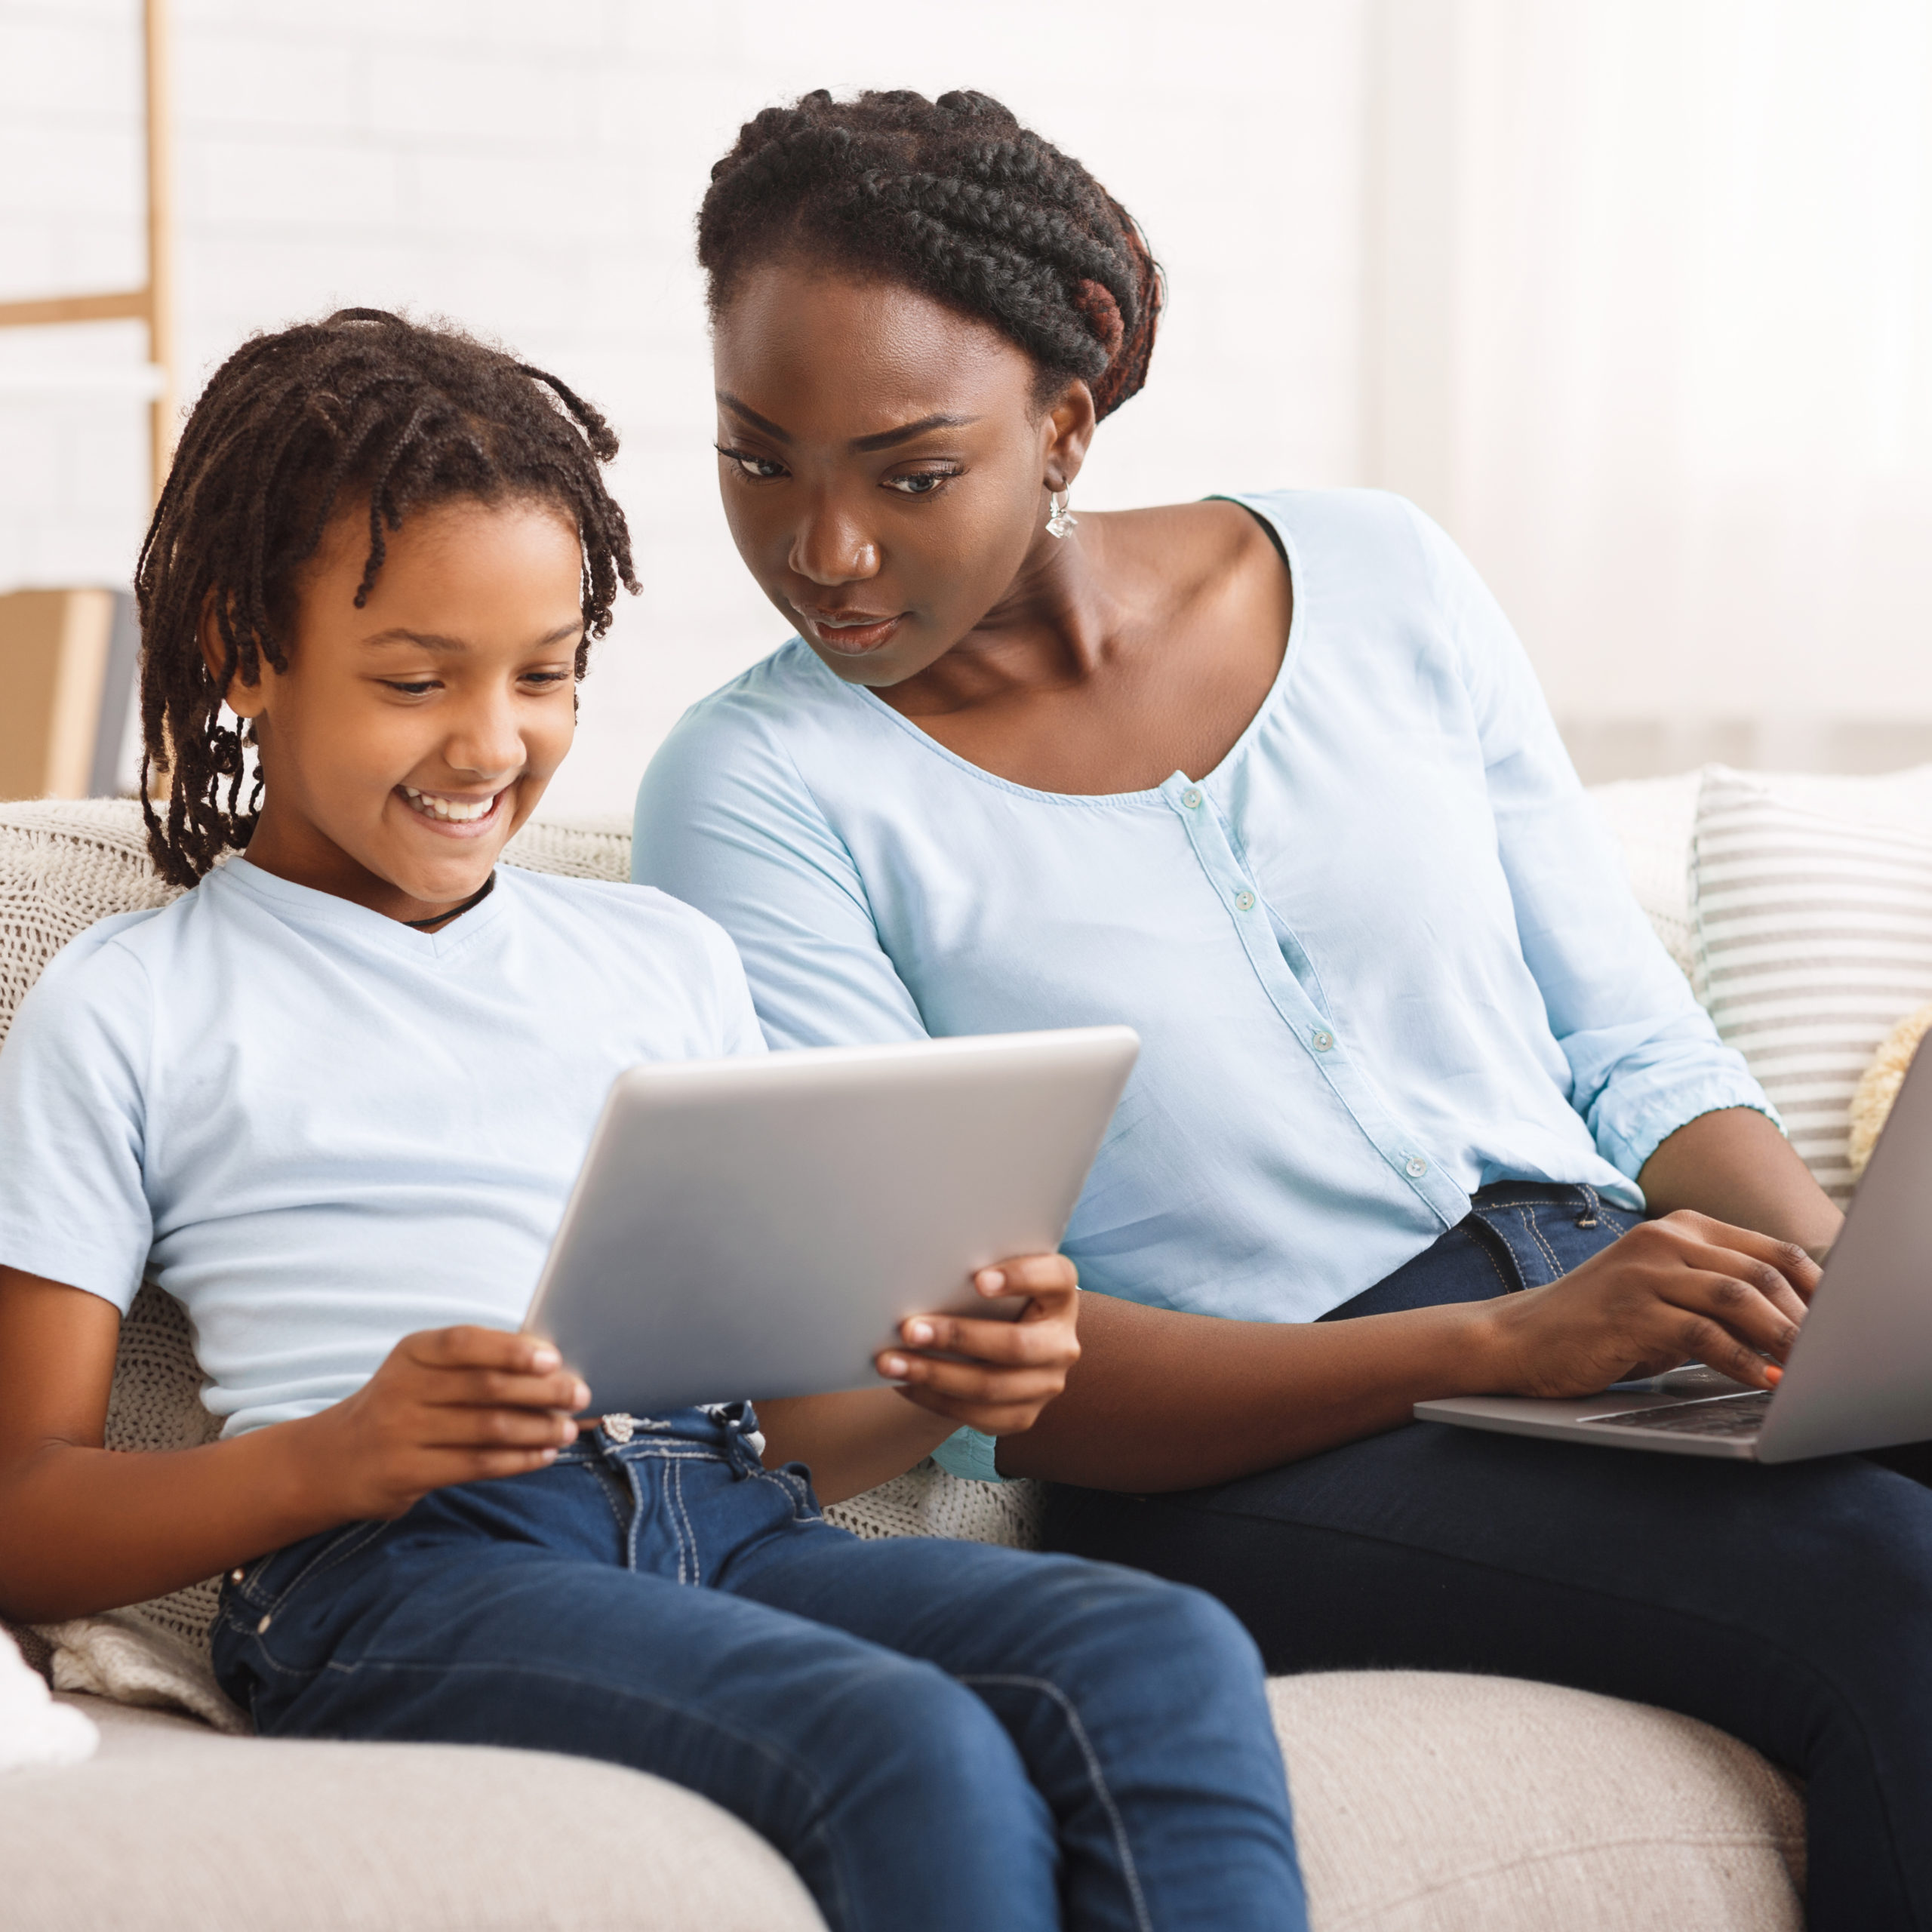 Why should parents limit screen time of their kids scaled